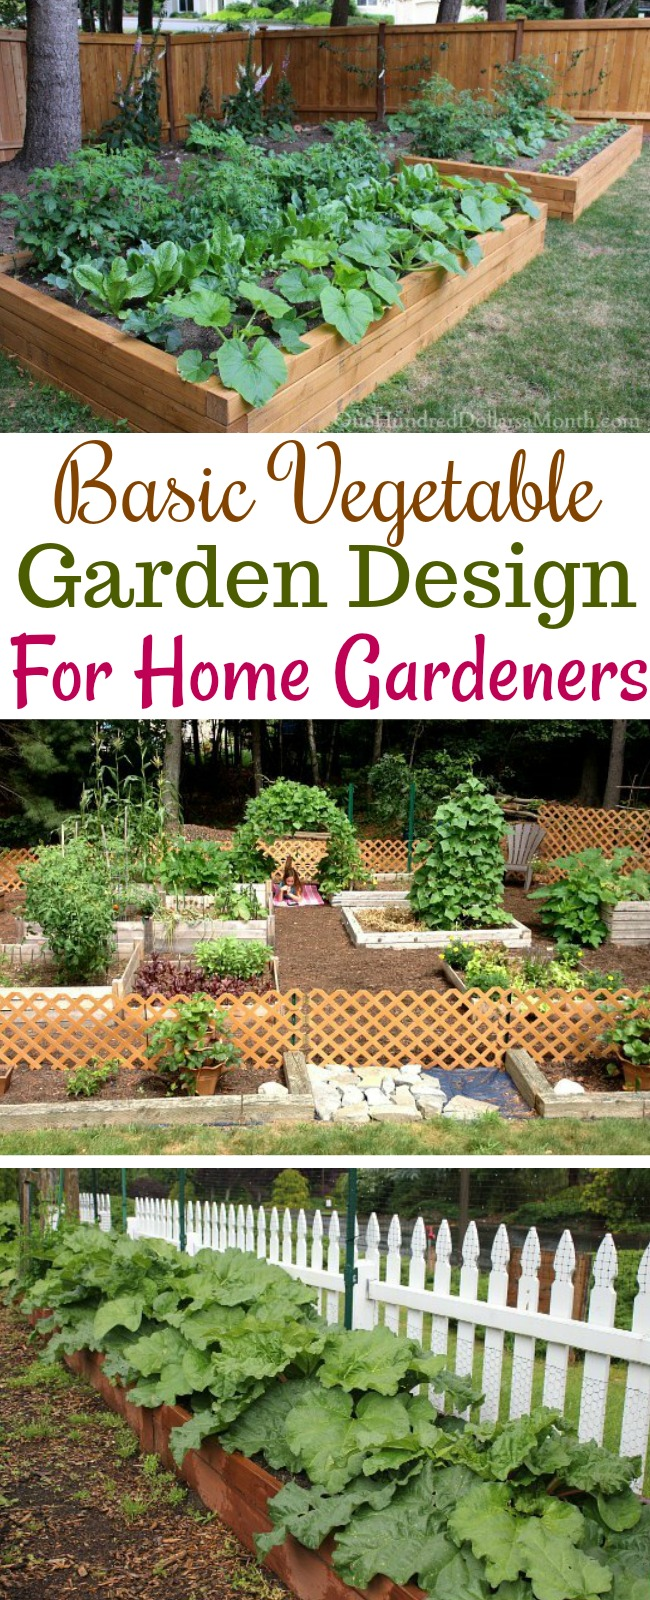 Tips on basic garden design one hundred dollars a month - Garden design basics ...